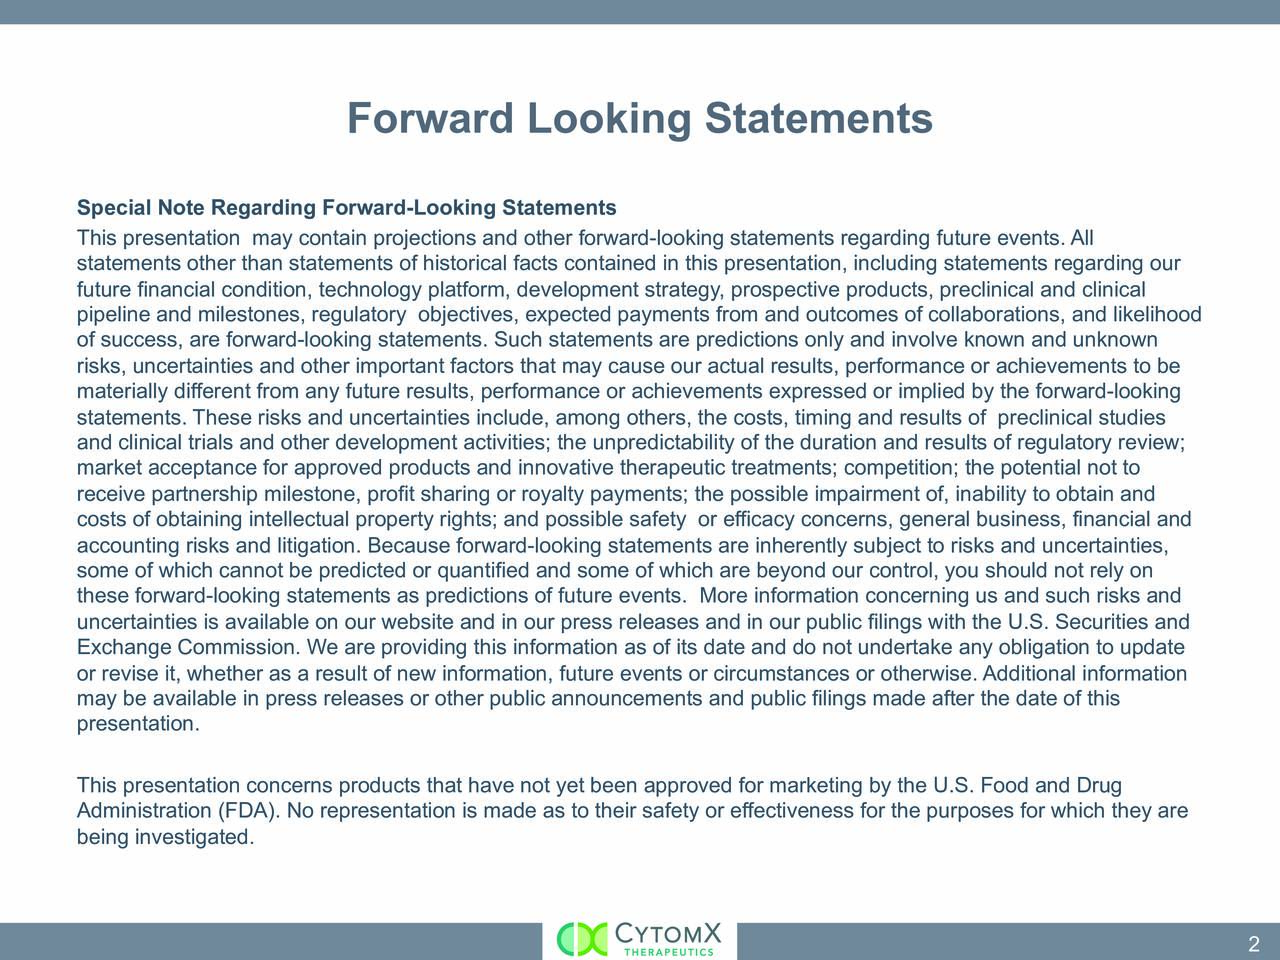 Special Note Regarding Forward-Looking Statements This presentation may contain projections and other forward-looking statements regarding future events. All statements other than statements of historical facts contained in this presentation, including statements regarding our future financial condition, technology platform, development strategy, prospective products, preclinical and clinical pipeline and milestones, regulatory objectives, expected payments from and outcomes of collaborations, and likelihood of success, are forward-looking statements. Such statements are predictions only and involve known and unknown risks, uncertainties and other important factors that may cause our actual results, performance or achievements to be materially different from any future results, performance or achievements expressed or implied by the forward-looking statements. These risks and uncertainties include, among others, the costs, timing and results of preclinical studies and clinical trials and other development activities; the unpredictability of the duration and results of regulatory review; market acceptance for approved products and innovative therapeutic treatments; competition; the potential not to receive partnership milestone, profit sharing or royalty payments; the possible impairment of, inability to obtain and costs of obtaining intellectual property rights; and possible safety or efficacy concerns, general business, financial and accounting risks and litigation. Because forward-looking statements are inherently subject to risks and uncertainties, some of which cannot be predicted or quantified and some of which are beyond our control, you should not rely on these forward-looking statements as predictions of future events. More information concerning us and such risks and uncertainties is available on our website and in our press releases and in our public filings with the U.S. Securities and Exchange Commission. We are providing this information as of its date 